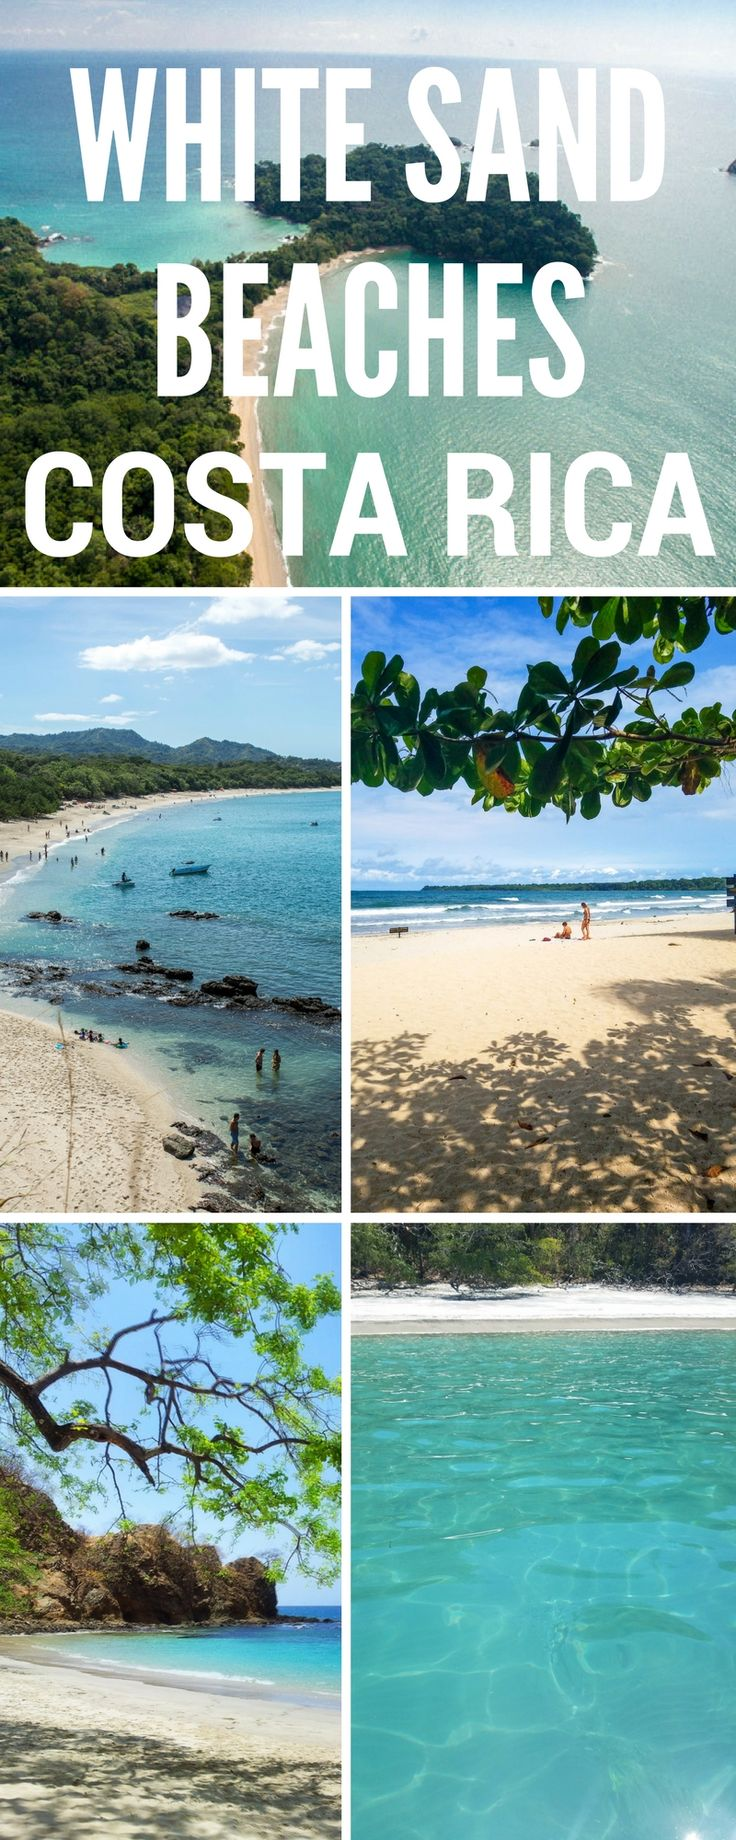 The stunning white sand beaches in Costa Rica,  click through to   read:https://mytanfeet.com/costa-rica-beach-information/white-sand-beaches-costa-rica/    Costa Rica   Costa Rica beaches   Costa Rica travel blog